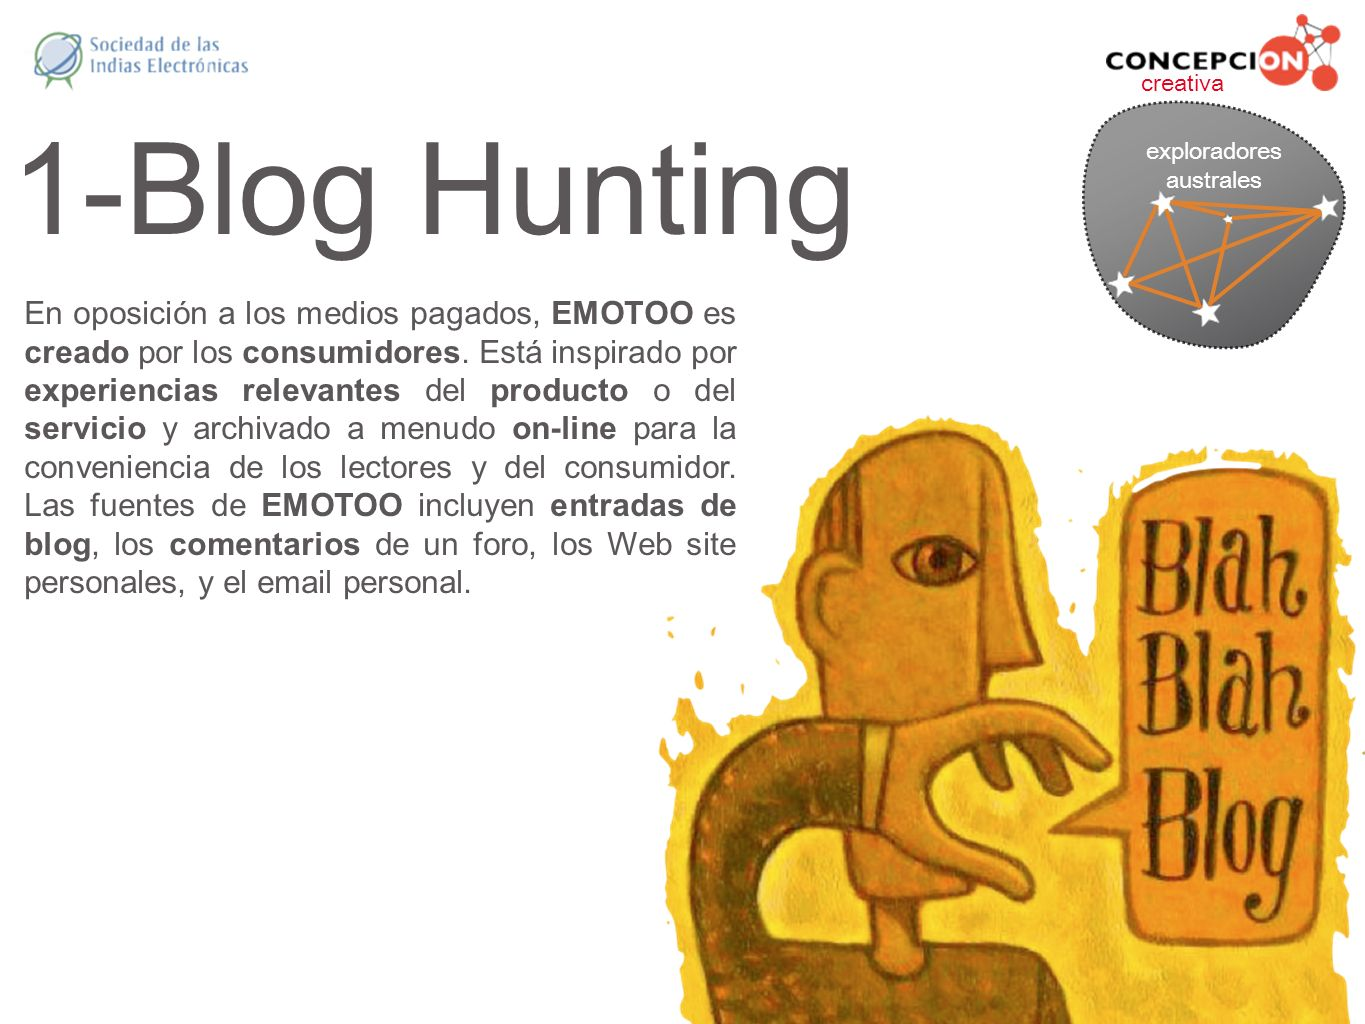 exploradores australes. creativa. 1-Blog Hunting.